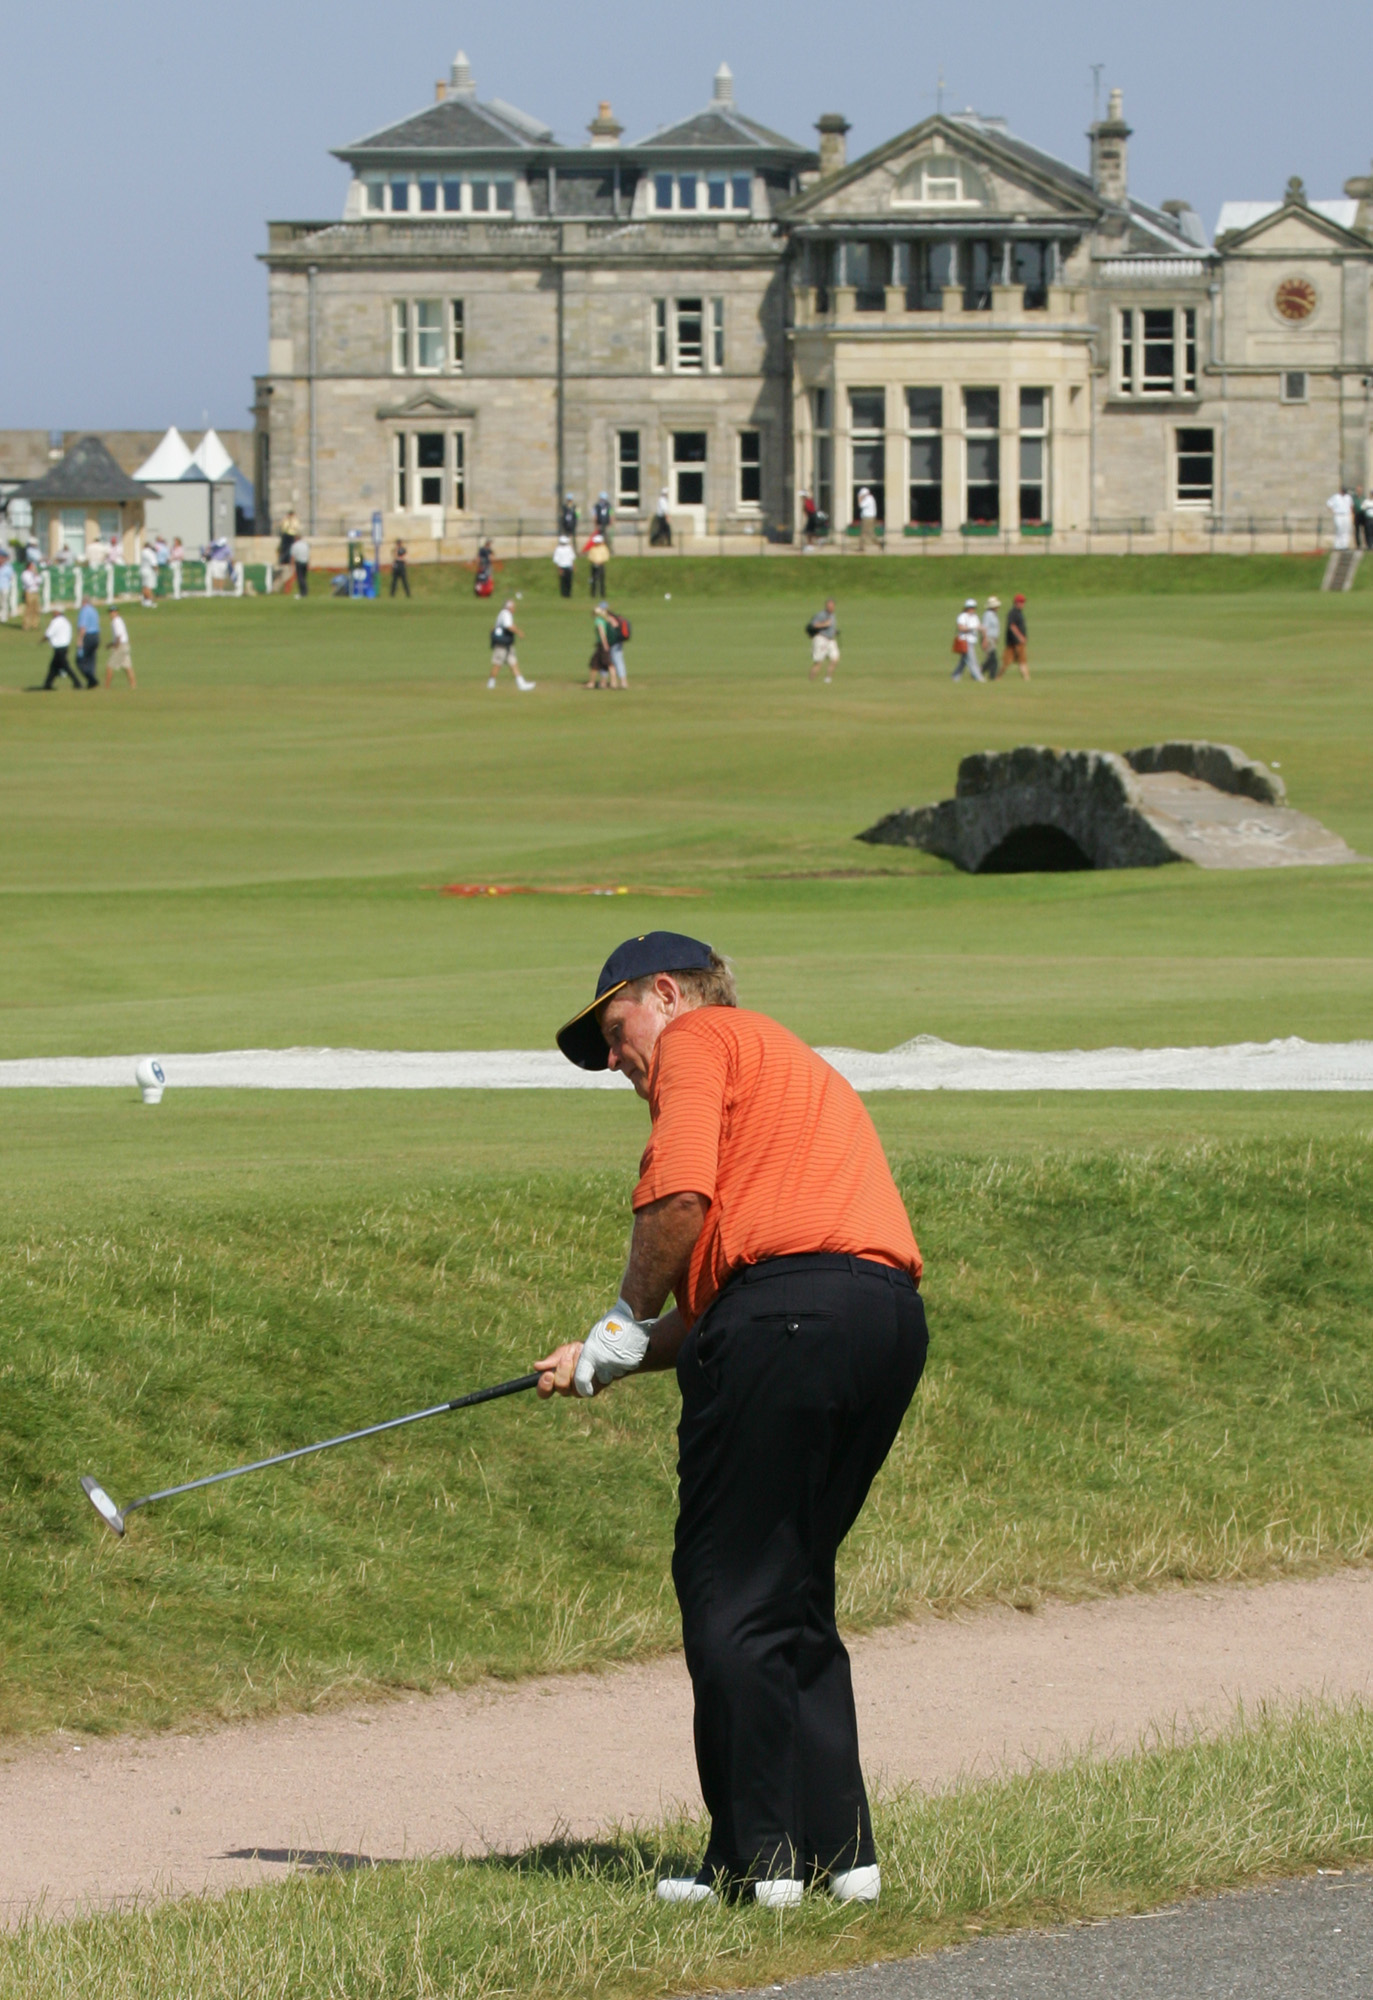 Jack Nicklaus plays from just off the 17th green during a practice round for the 2005 British Open at St. Andrews.